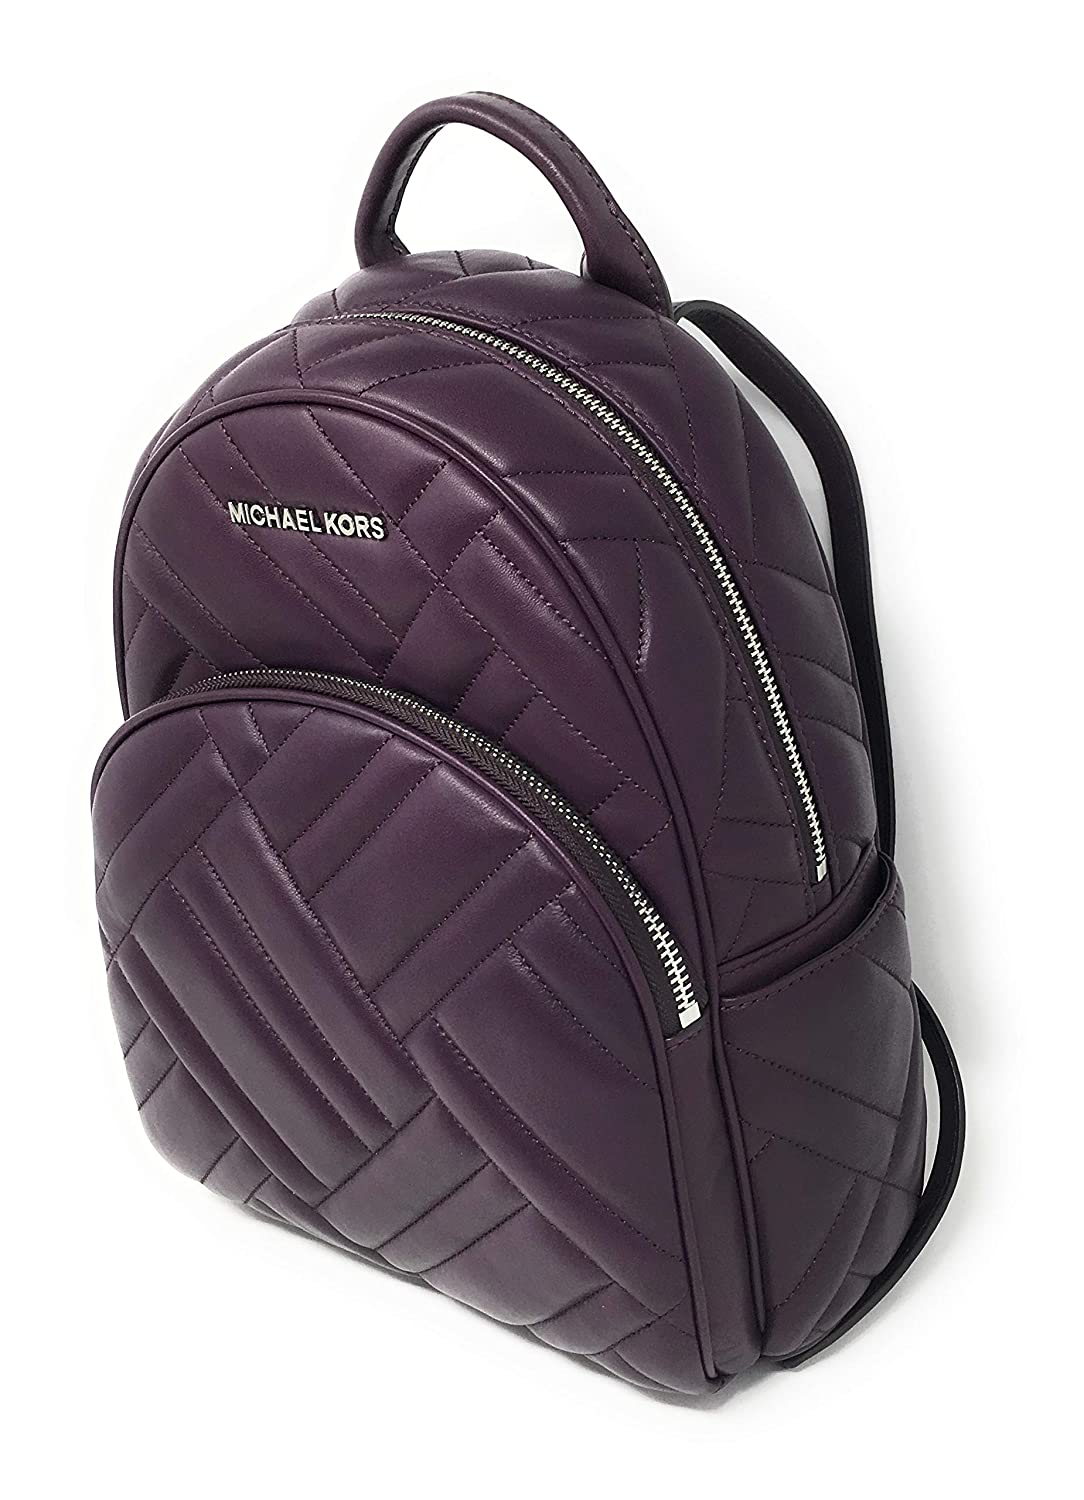 125c6d4205576f Amazon.com: Michael Kors Abbey Medium Chevron Quilted Leather Backpack  Damson: Shoes